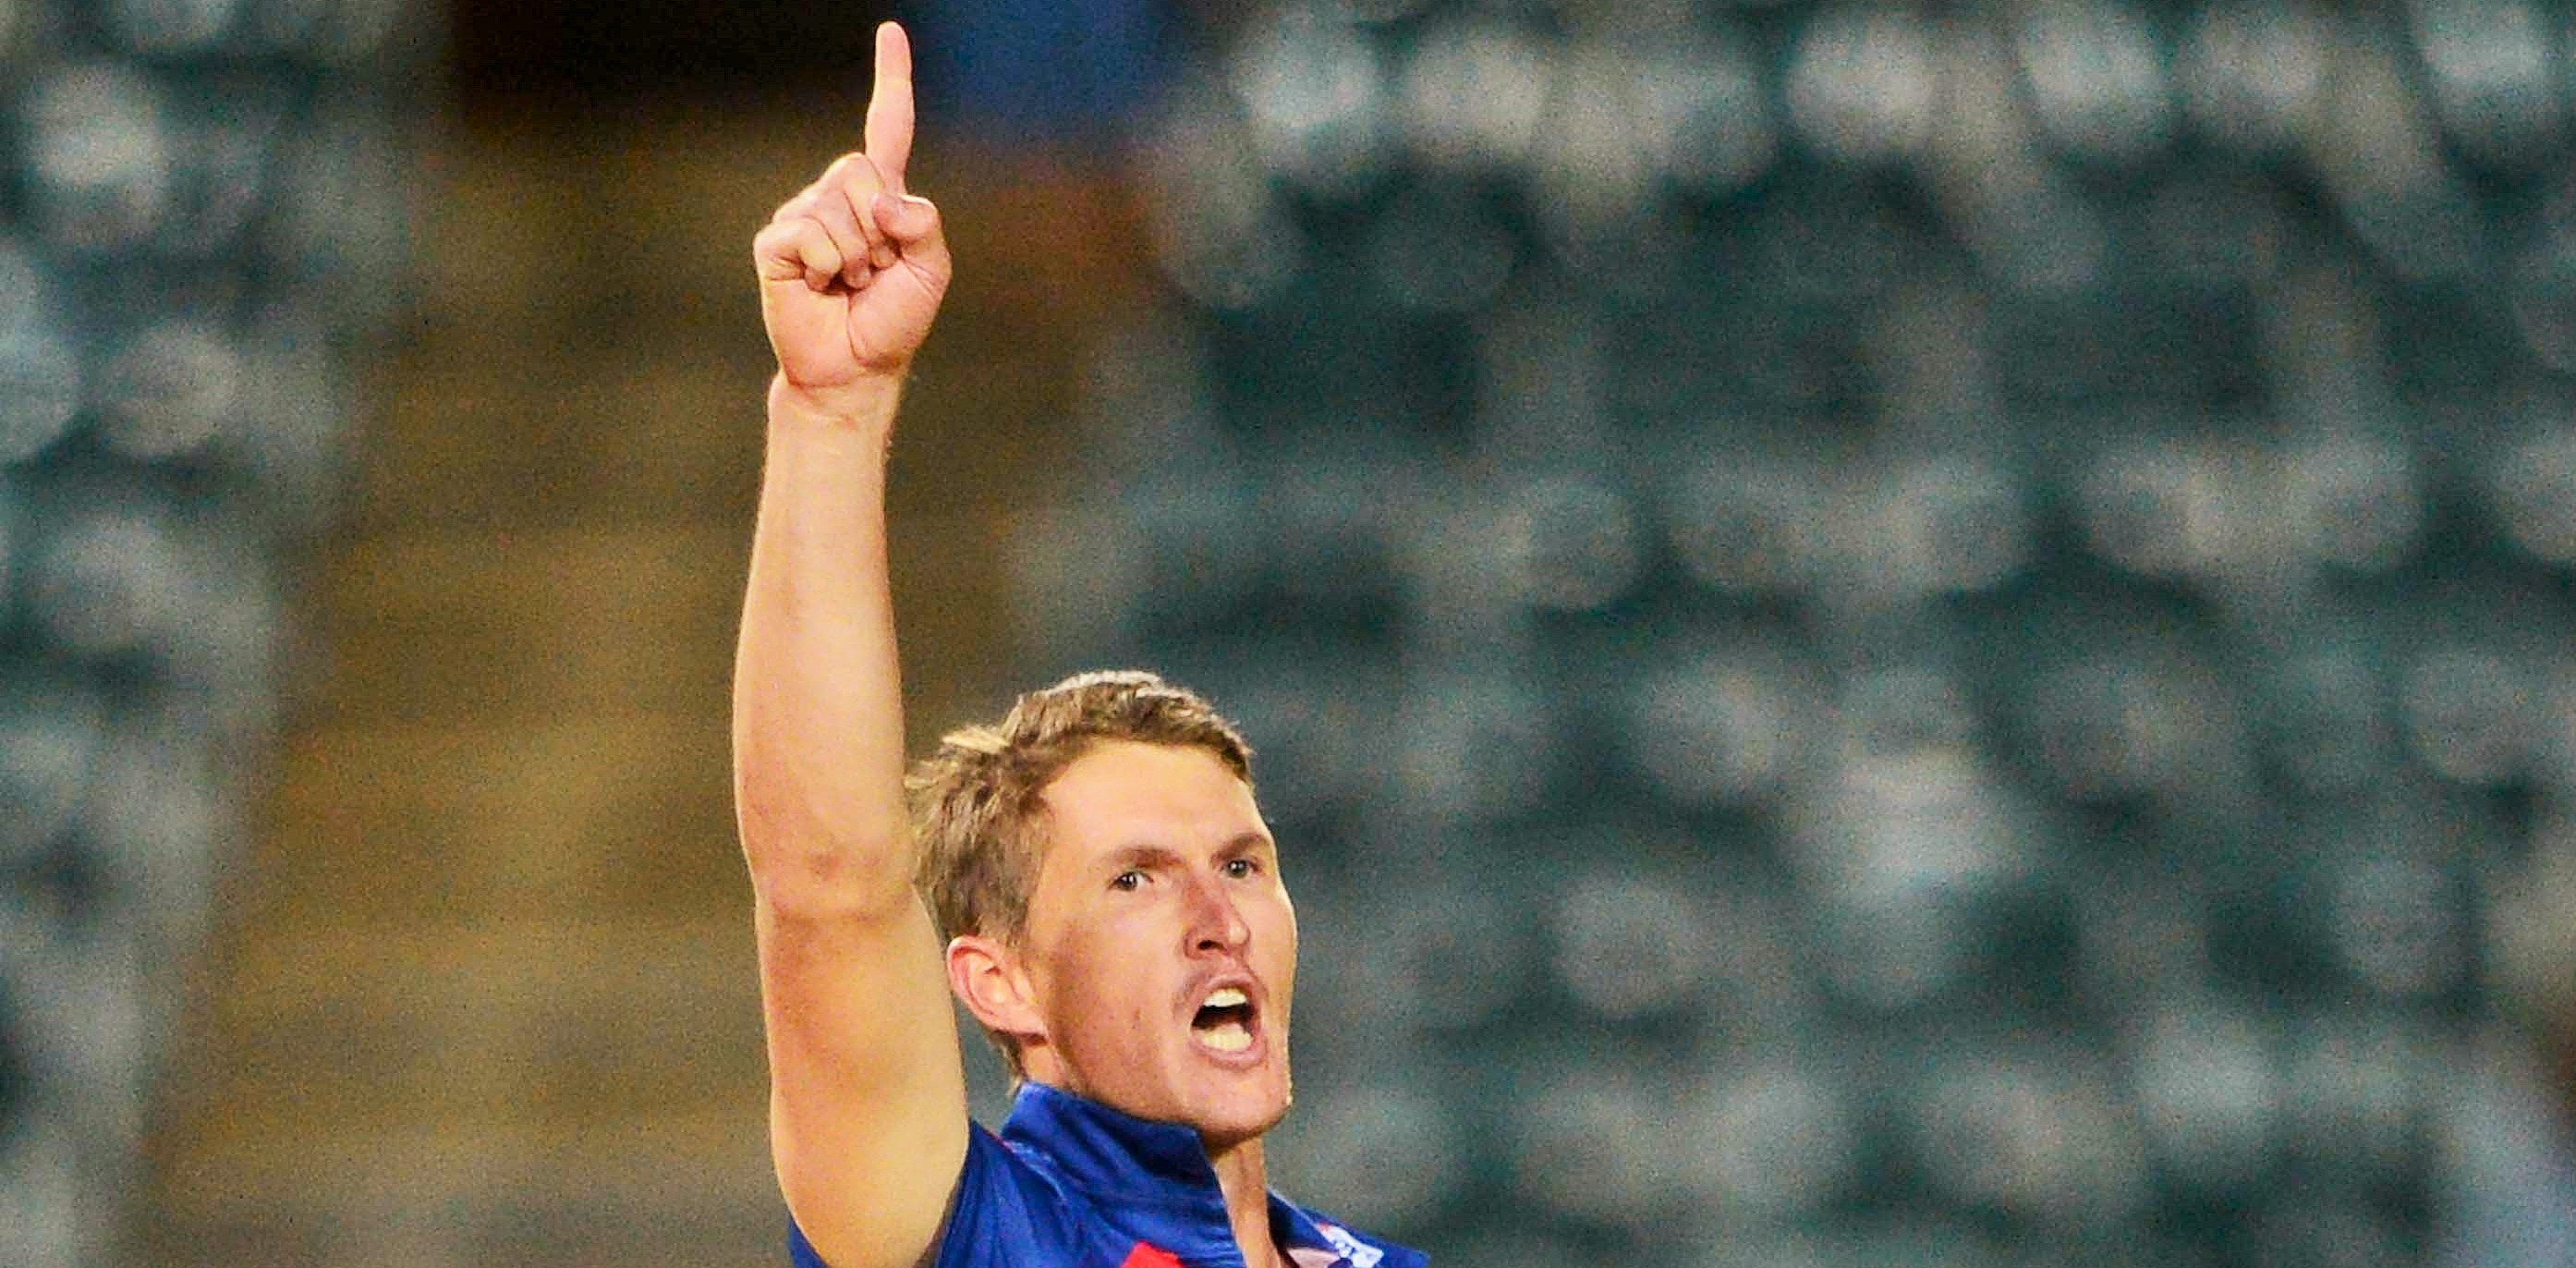 JOHANNESBURG, SOUTH AFRICA - NOVEMBER 22: Dwaine Pretorius of the Lions celebrate the wicket of Dwayne Bravo of the Dolphins during the Ram Slam T20 Challenge match between bizhub Highveld Lions and Sunfoil Dolphins at Bidvest Wanderers Stadium on November 22, 2015 in Johannesburg, South Africa. (Photo by Lee Warren/Gallo Images)